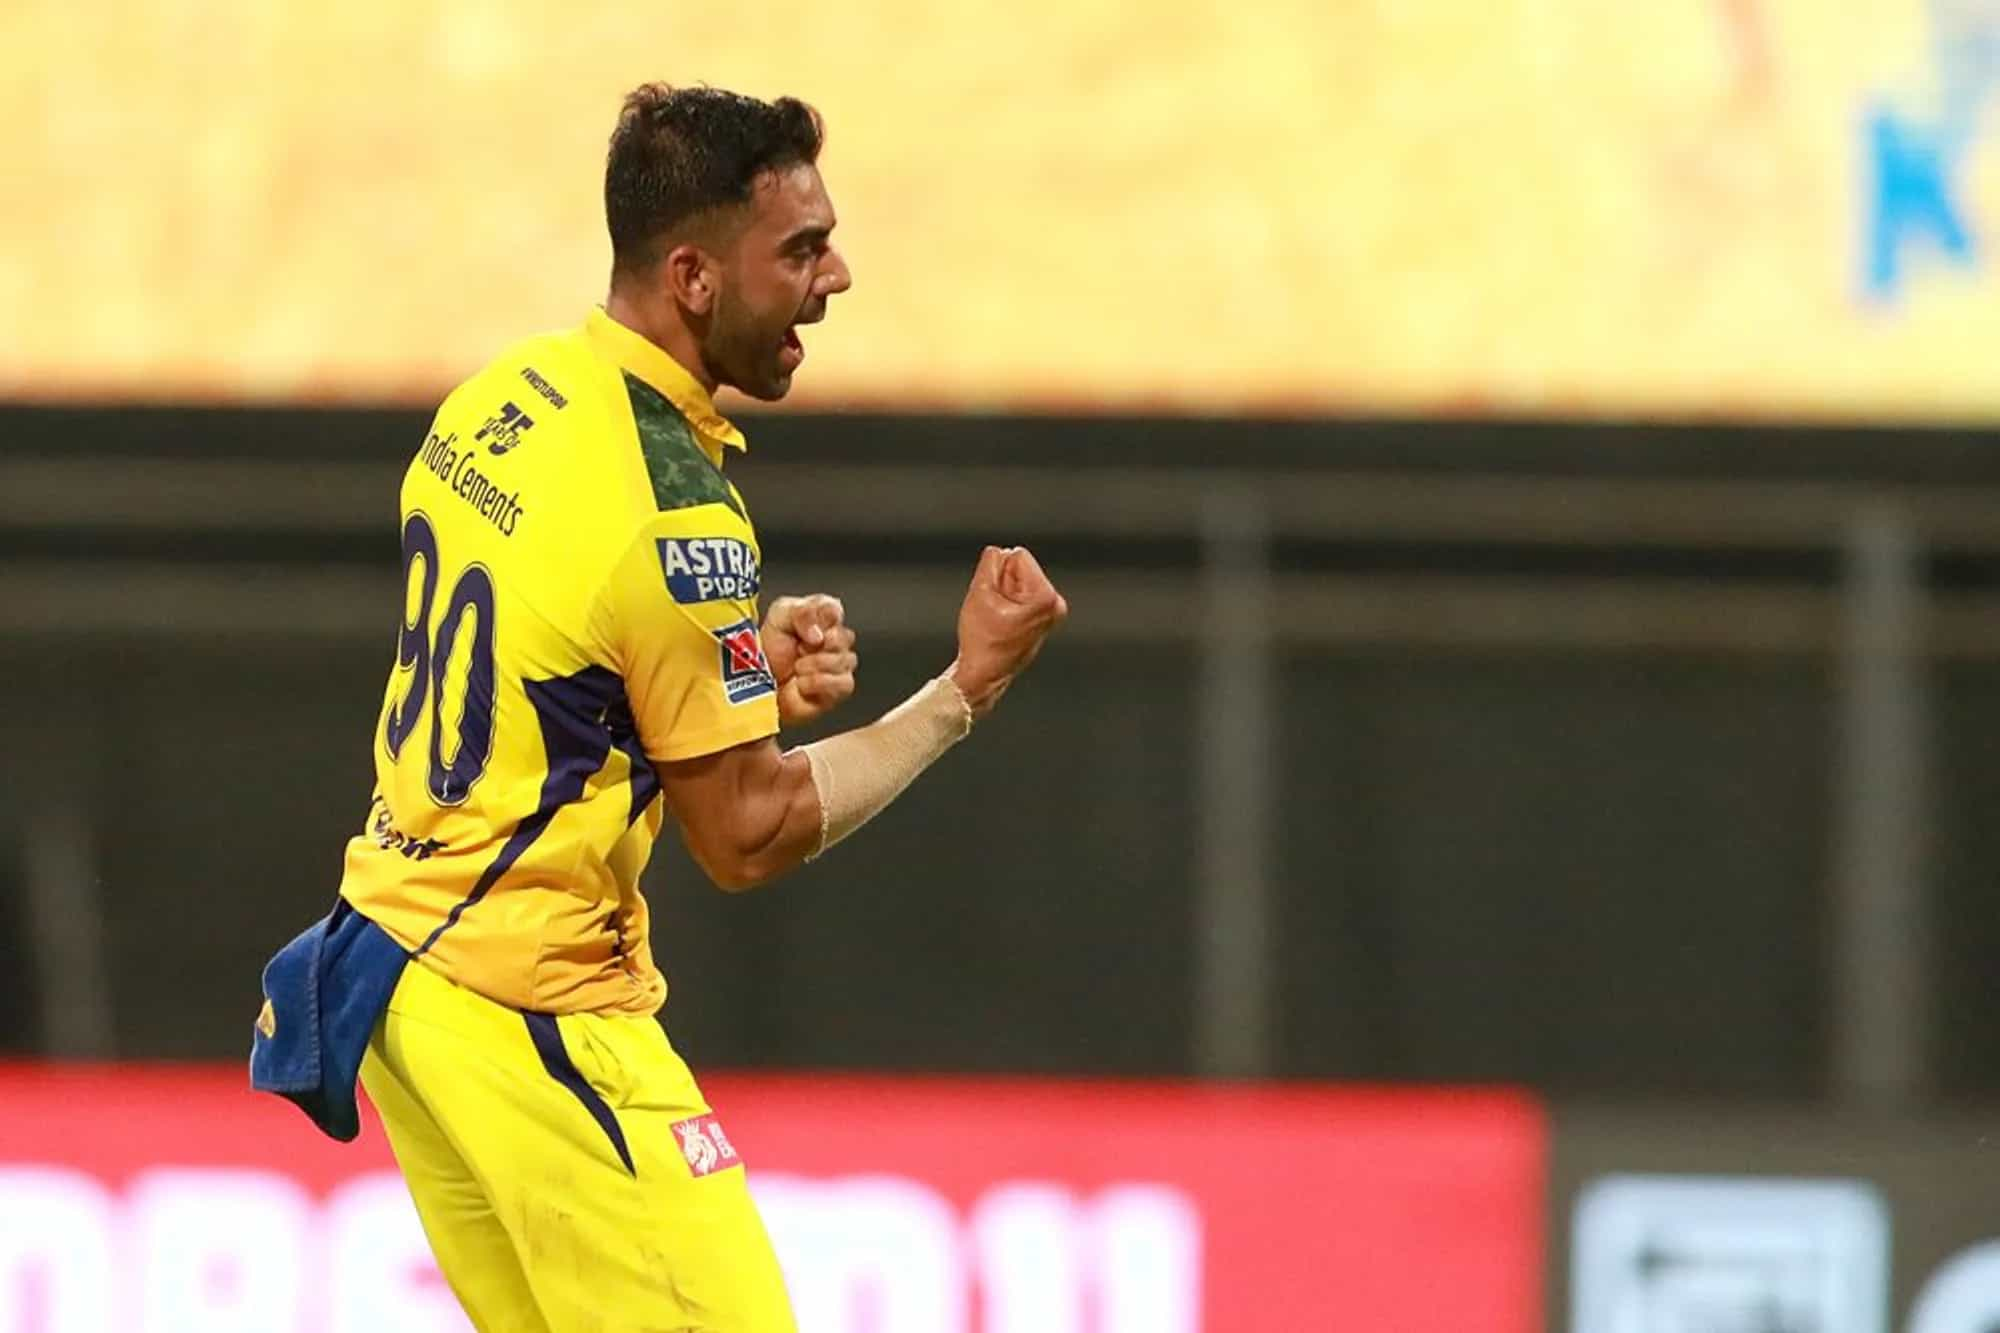 PBKS vs CSK: Deepak Chahar Registers His Best Bowling Figures in The IPL